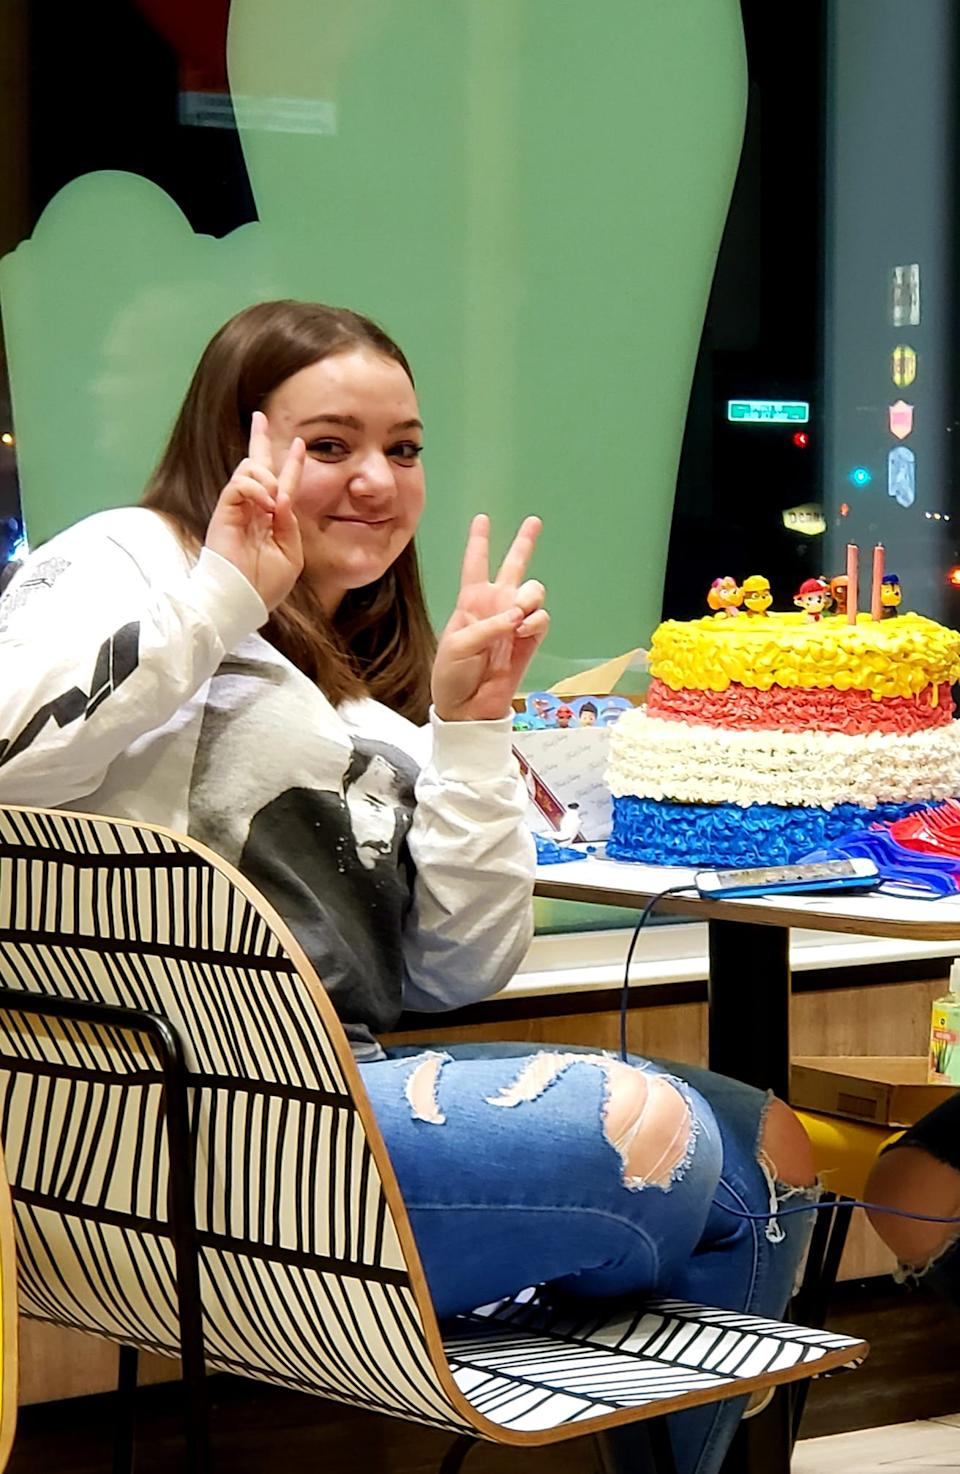 Kylie Leniz, who was fatally shot while working at McDonald's, smiles and holds up two peace signs with a cake.